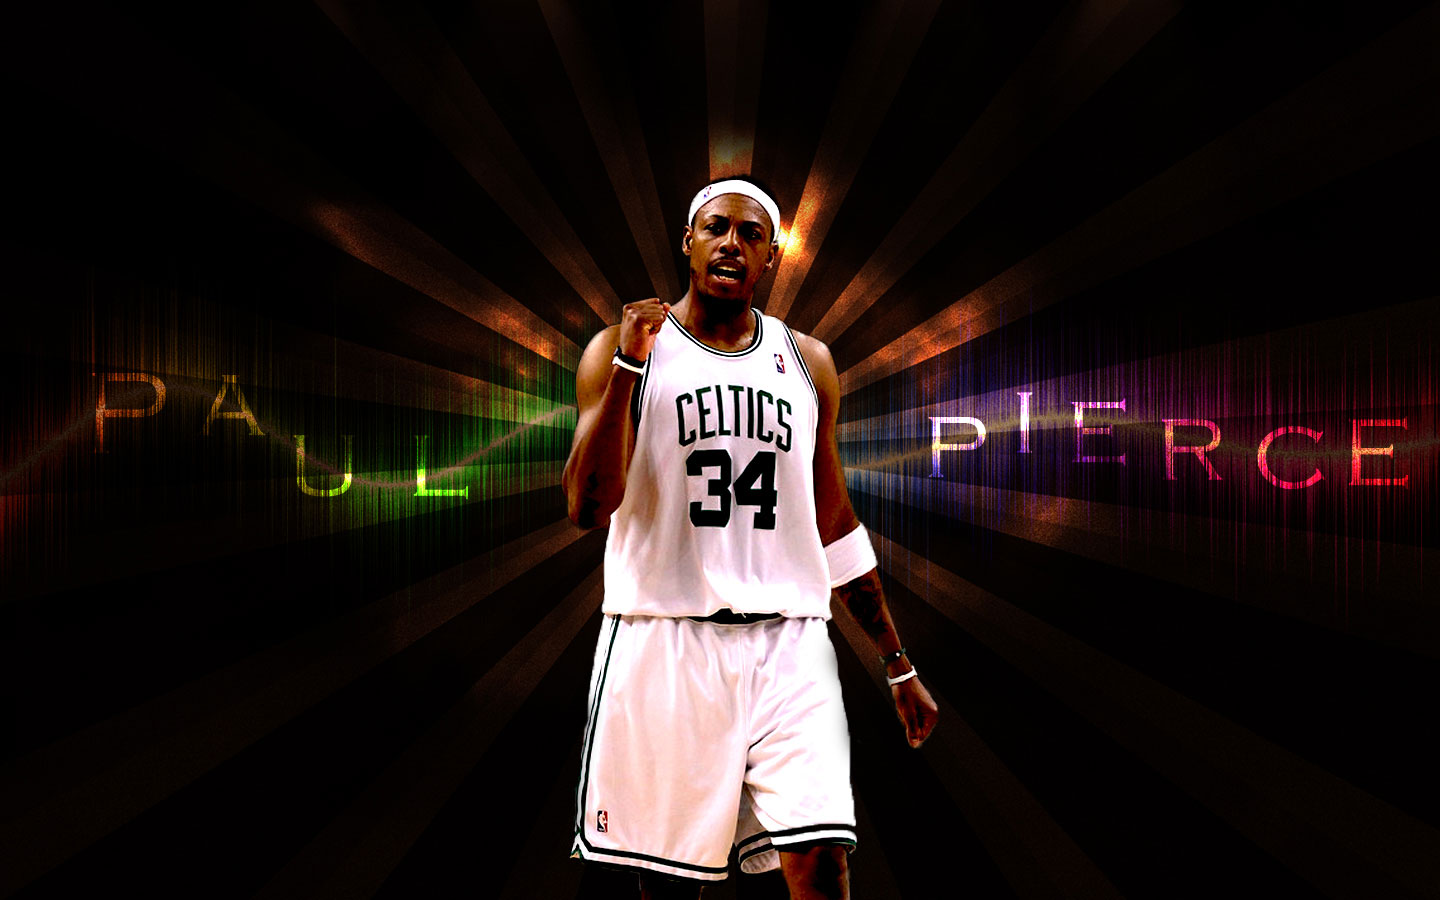 http://3.bp.blogspot.com/-yTmiK_qmm4s/Tft-4P5C42I/AAAAAAAACGA/Zmz6ngz_NQI/s1600/Paul-Pierce-2010-Widescreen-Wallpaper.jpg